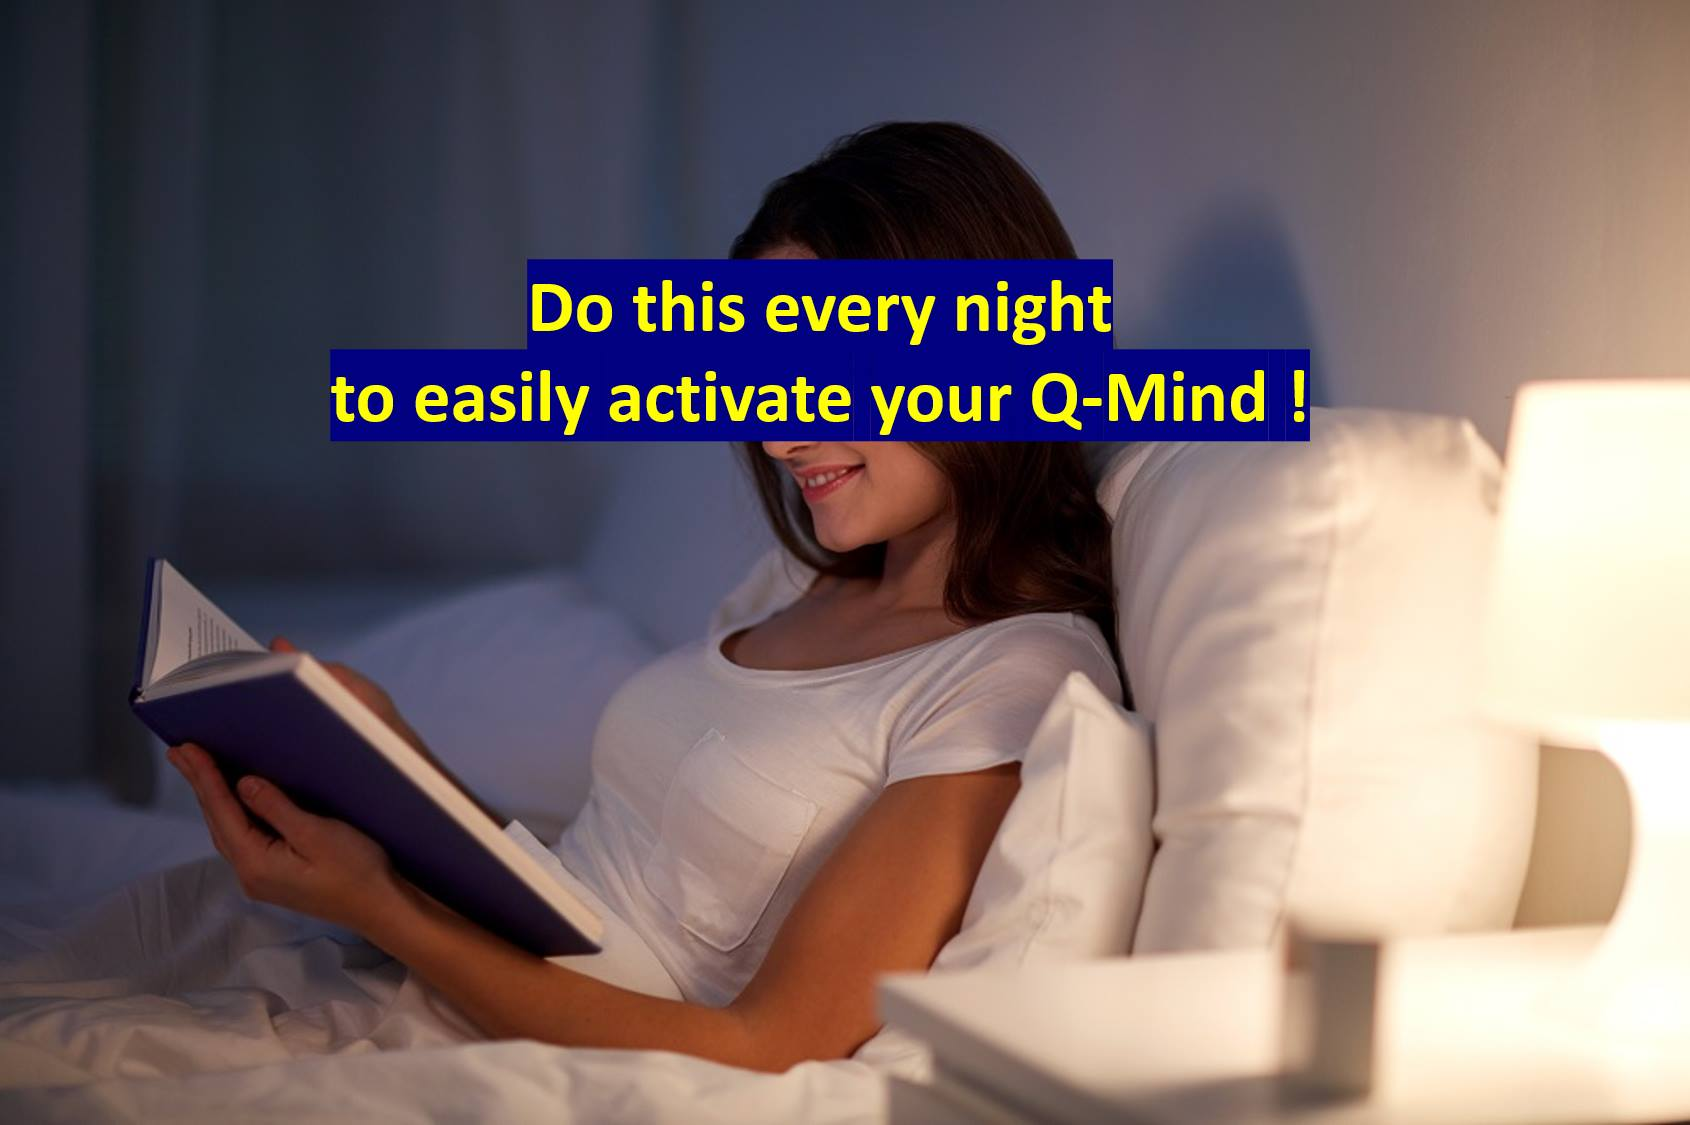 Do this every night to easily activate your Q-Mind!